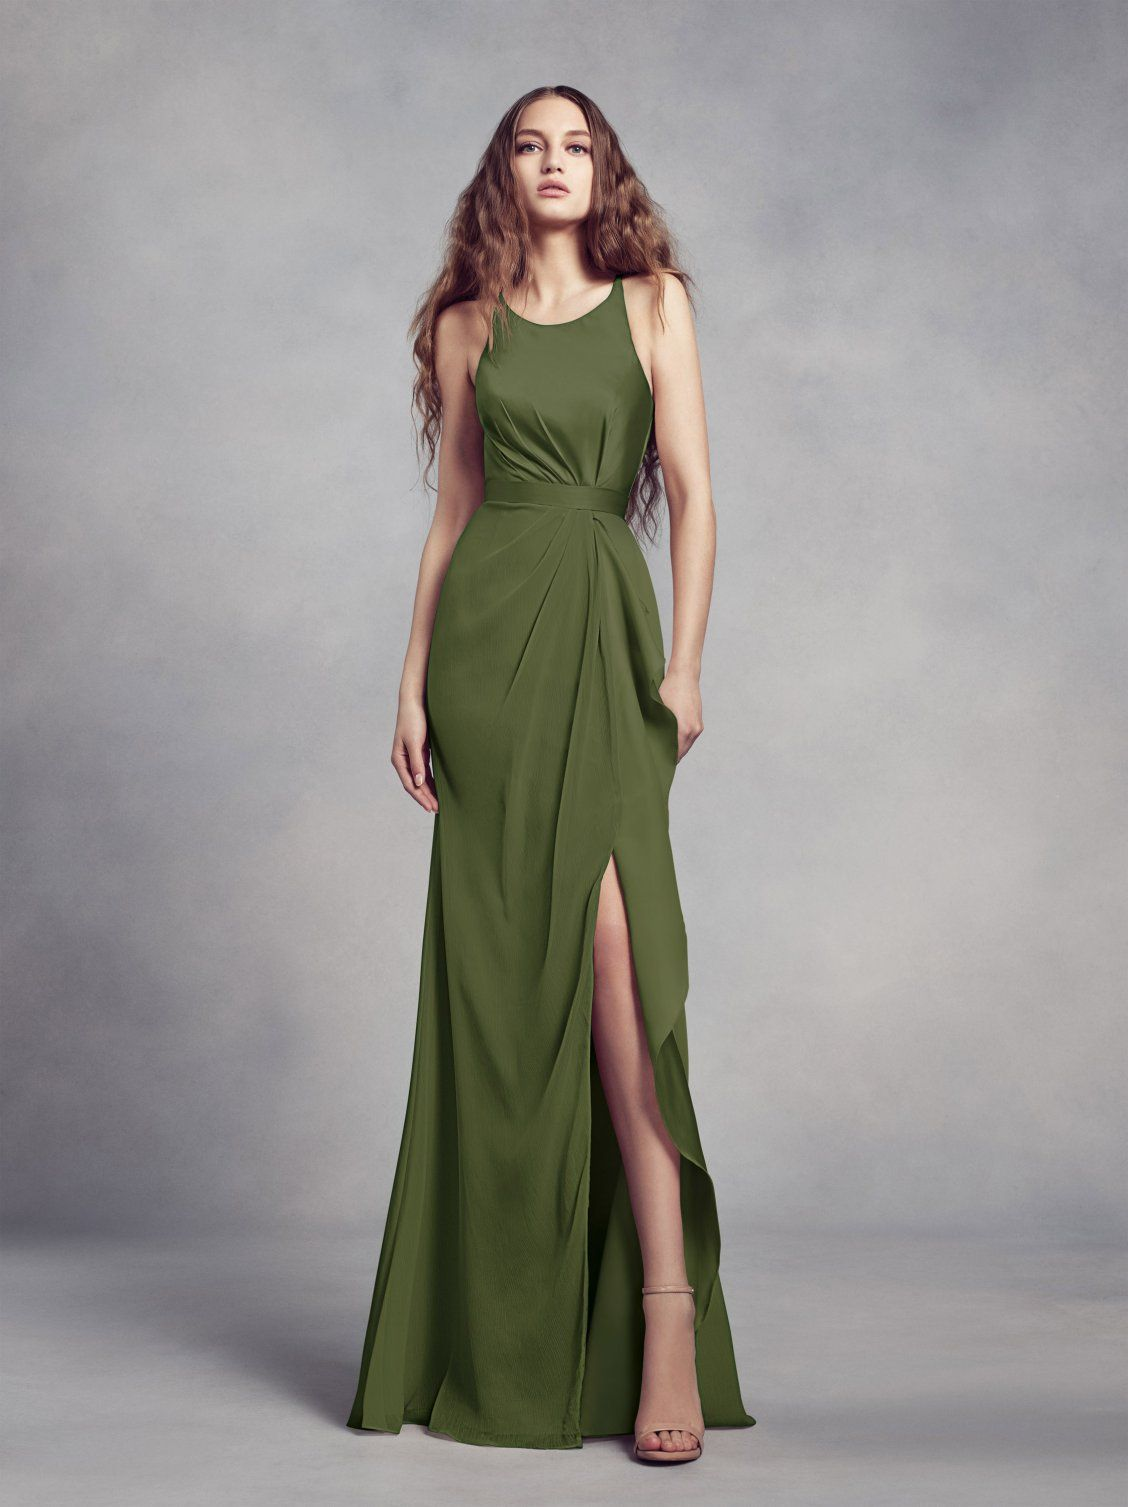 1d5373562f9d White by Vera Wang Bridesmaid Dress Style VW360340 in Olive green, the  newest shade in the White by Vera Wang bridesmaid dress collection.